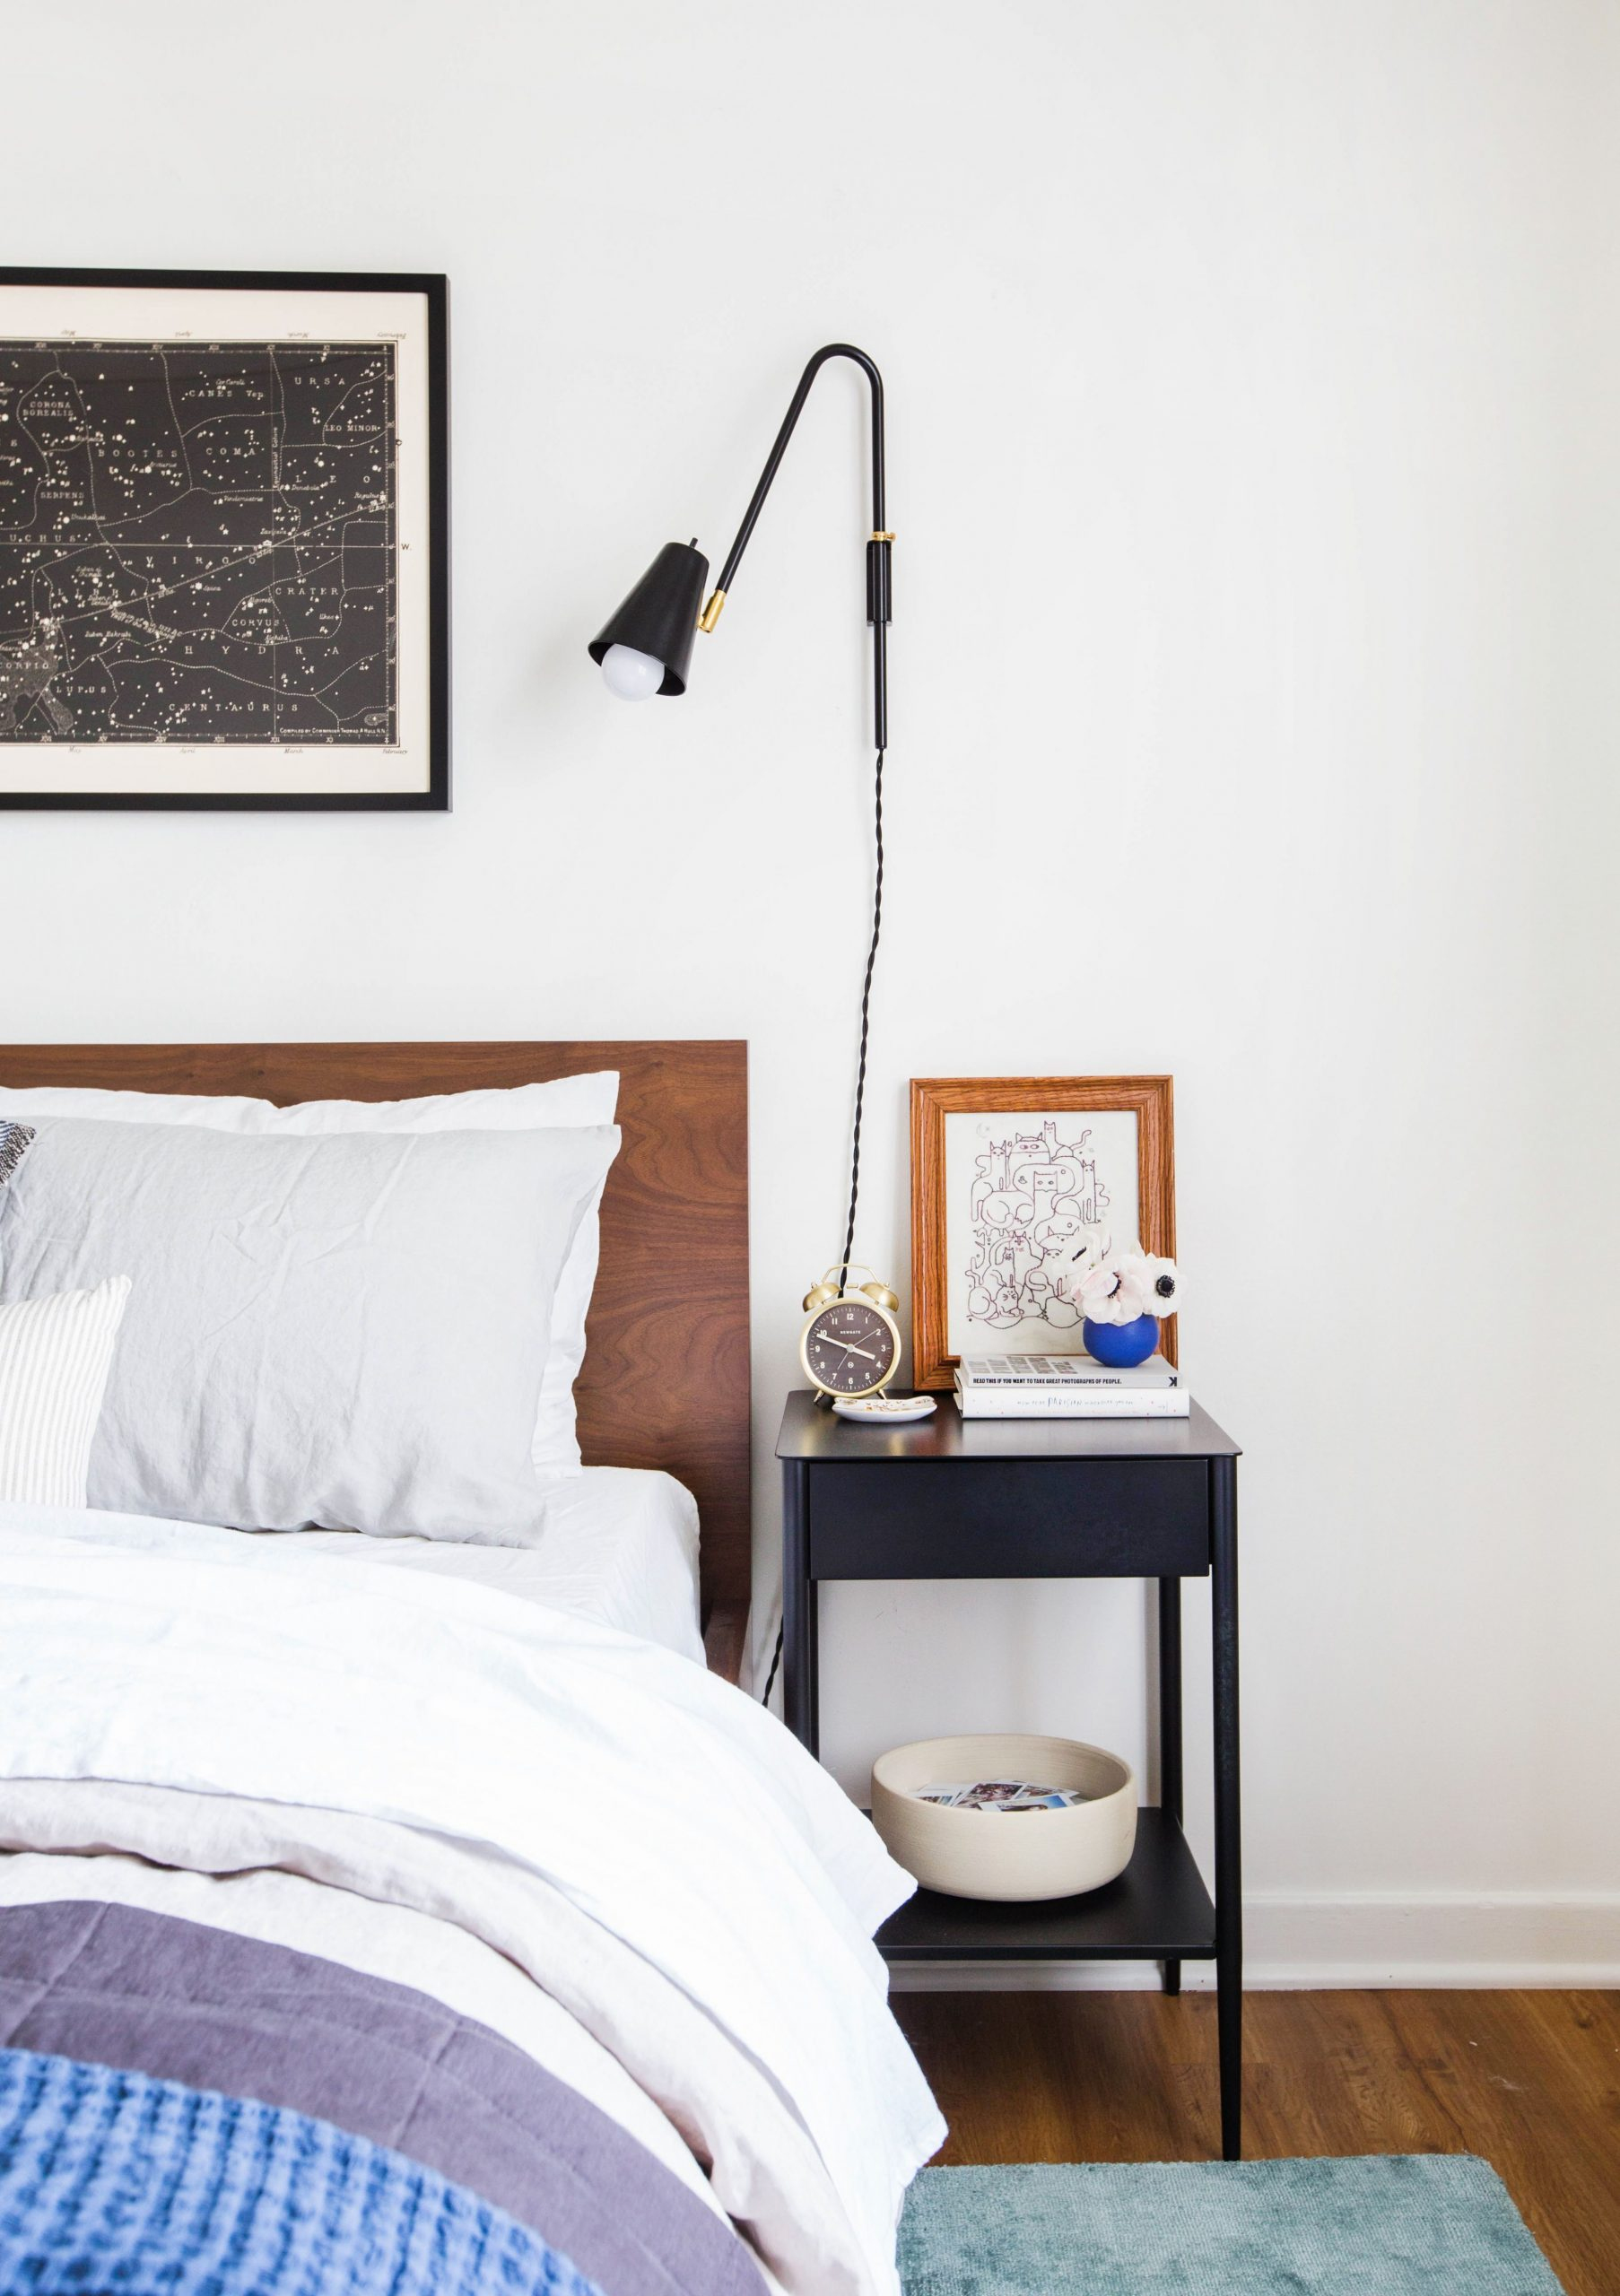 11 Minimalist Bedroom Ideas That Will Inspire You to Declutter - Bedroom Ideas Minimalist